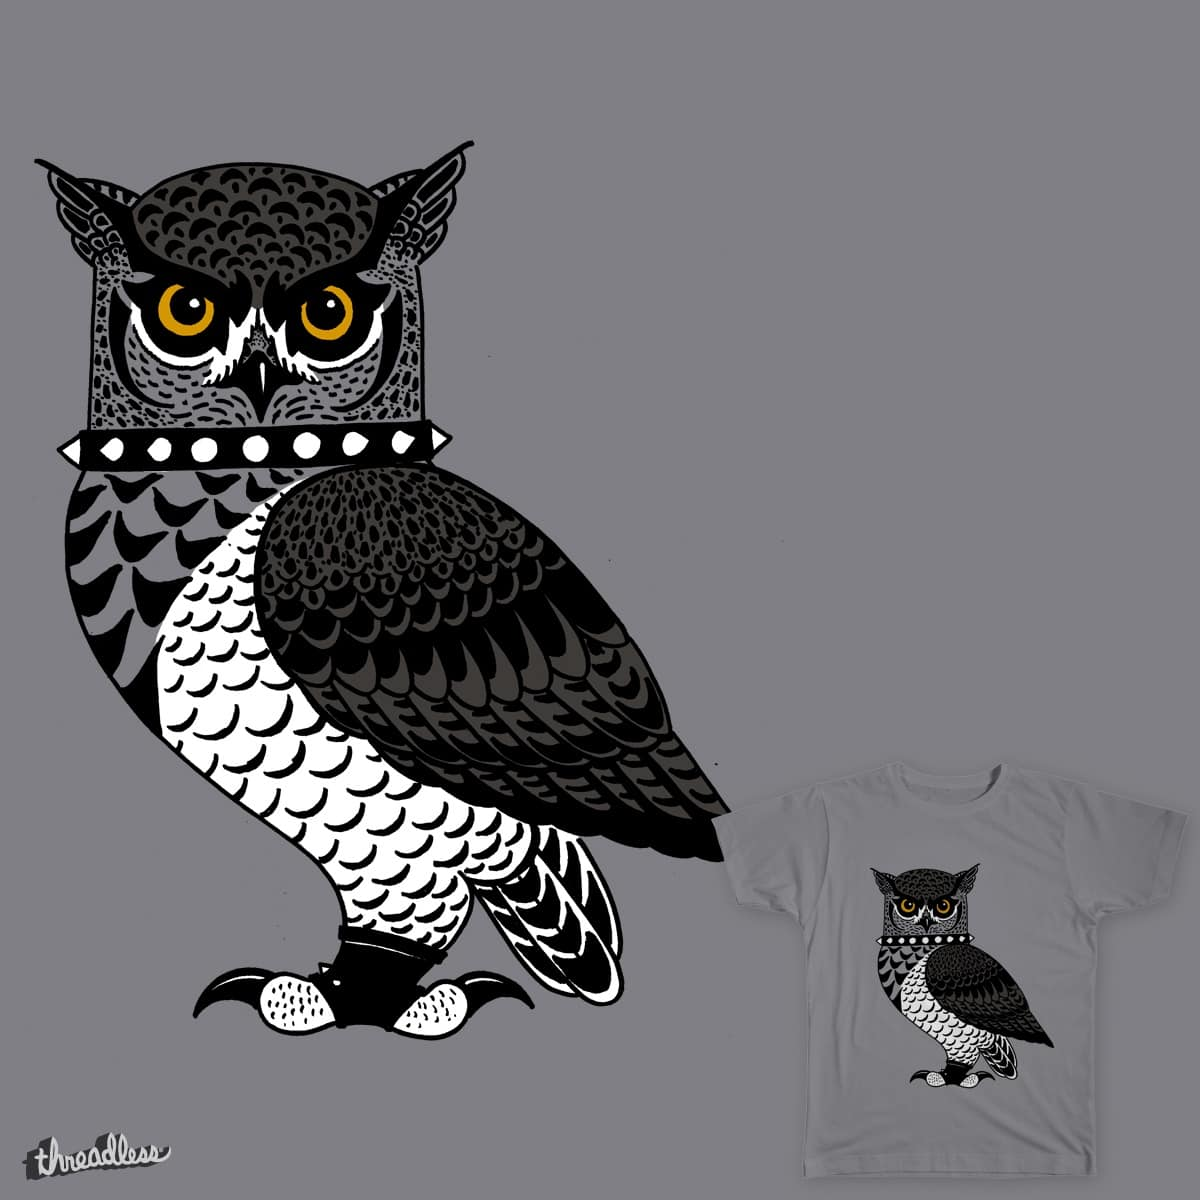 Goth Owl by Verreaux on Threadless